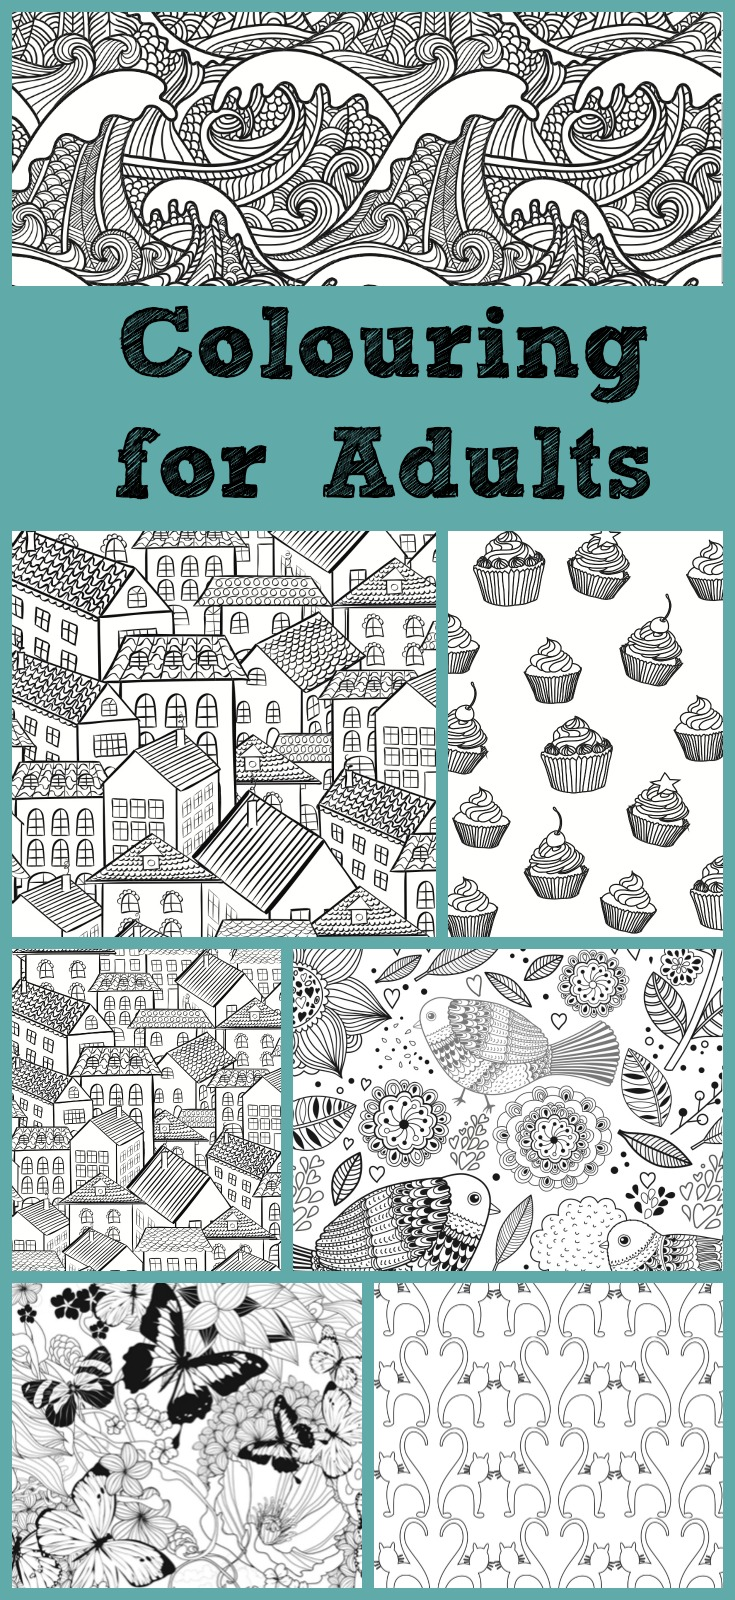 Colouring for adults. Grown up colouring pages are the new craze for stress relief. Find out some of the best grown up colouring books to buy